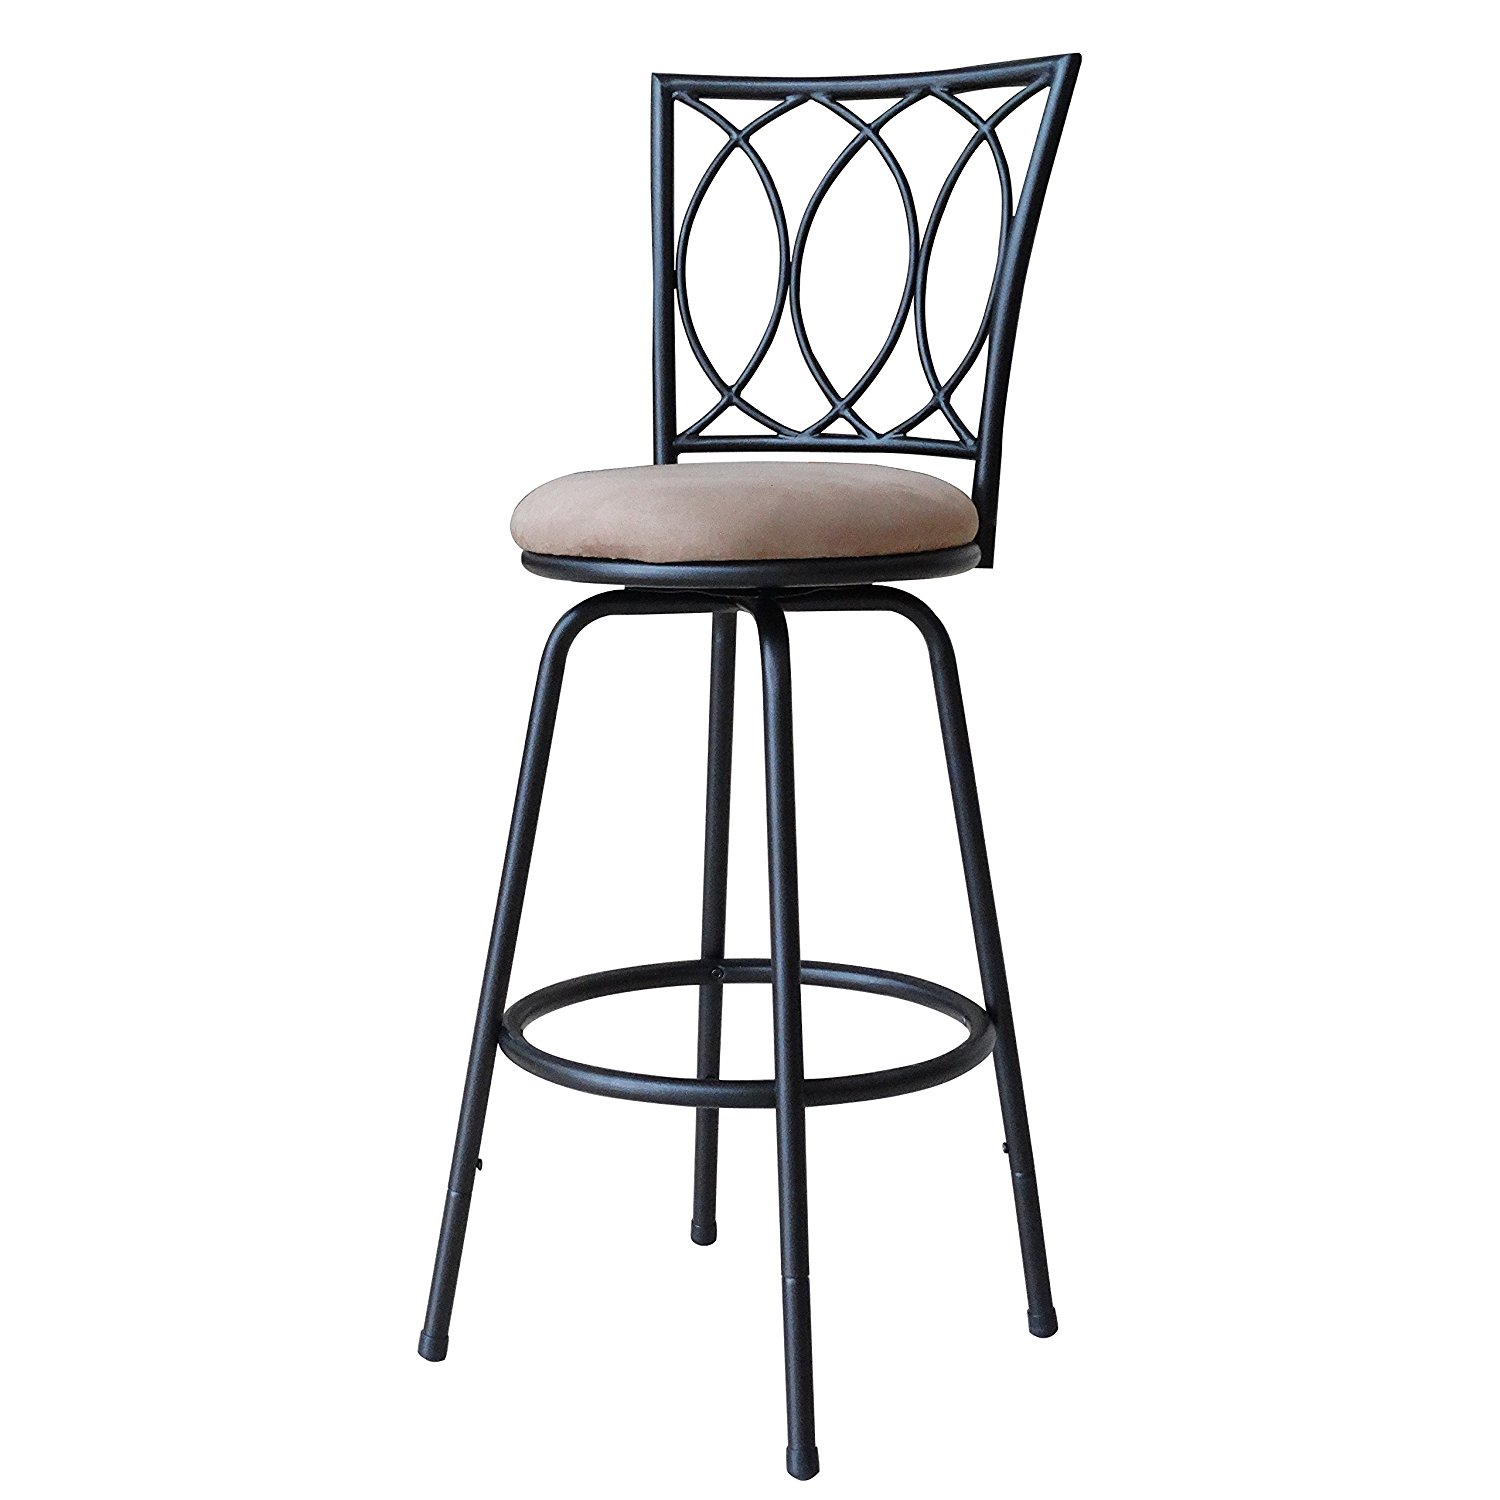 2. Roundhill Furniture Powder Coated Black Barstool